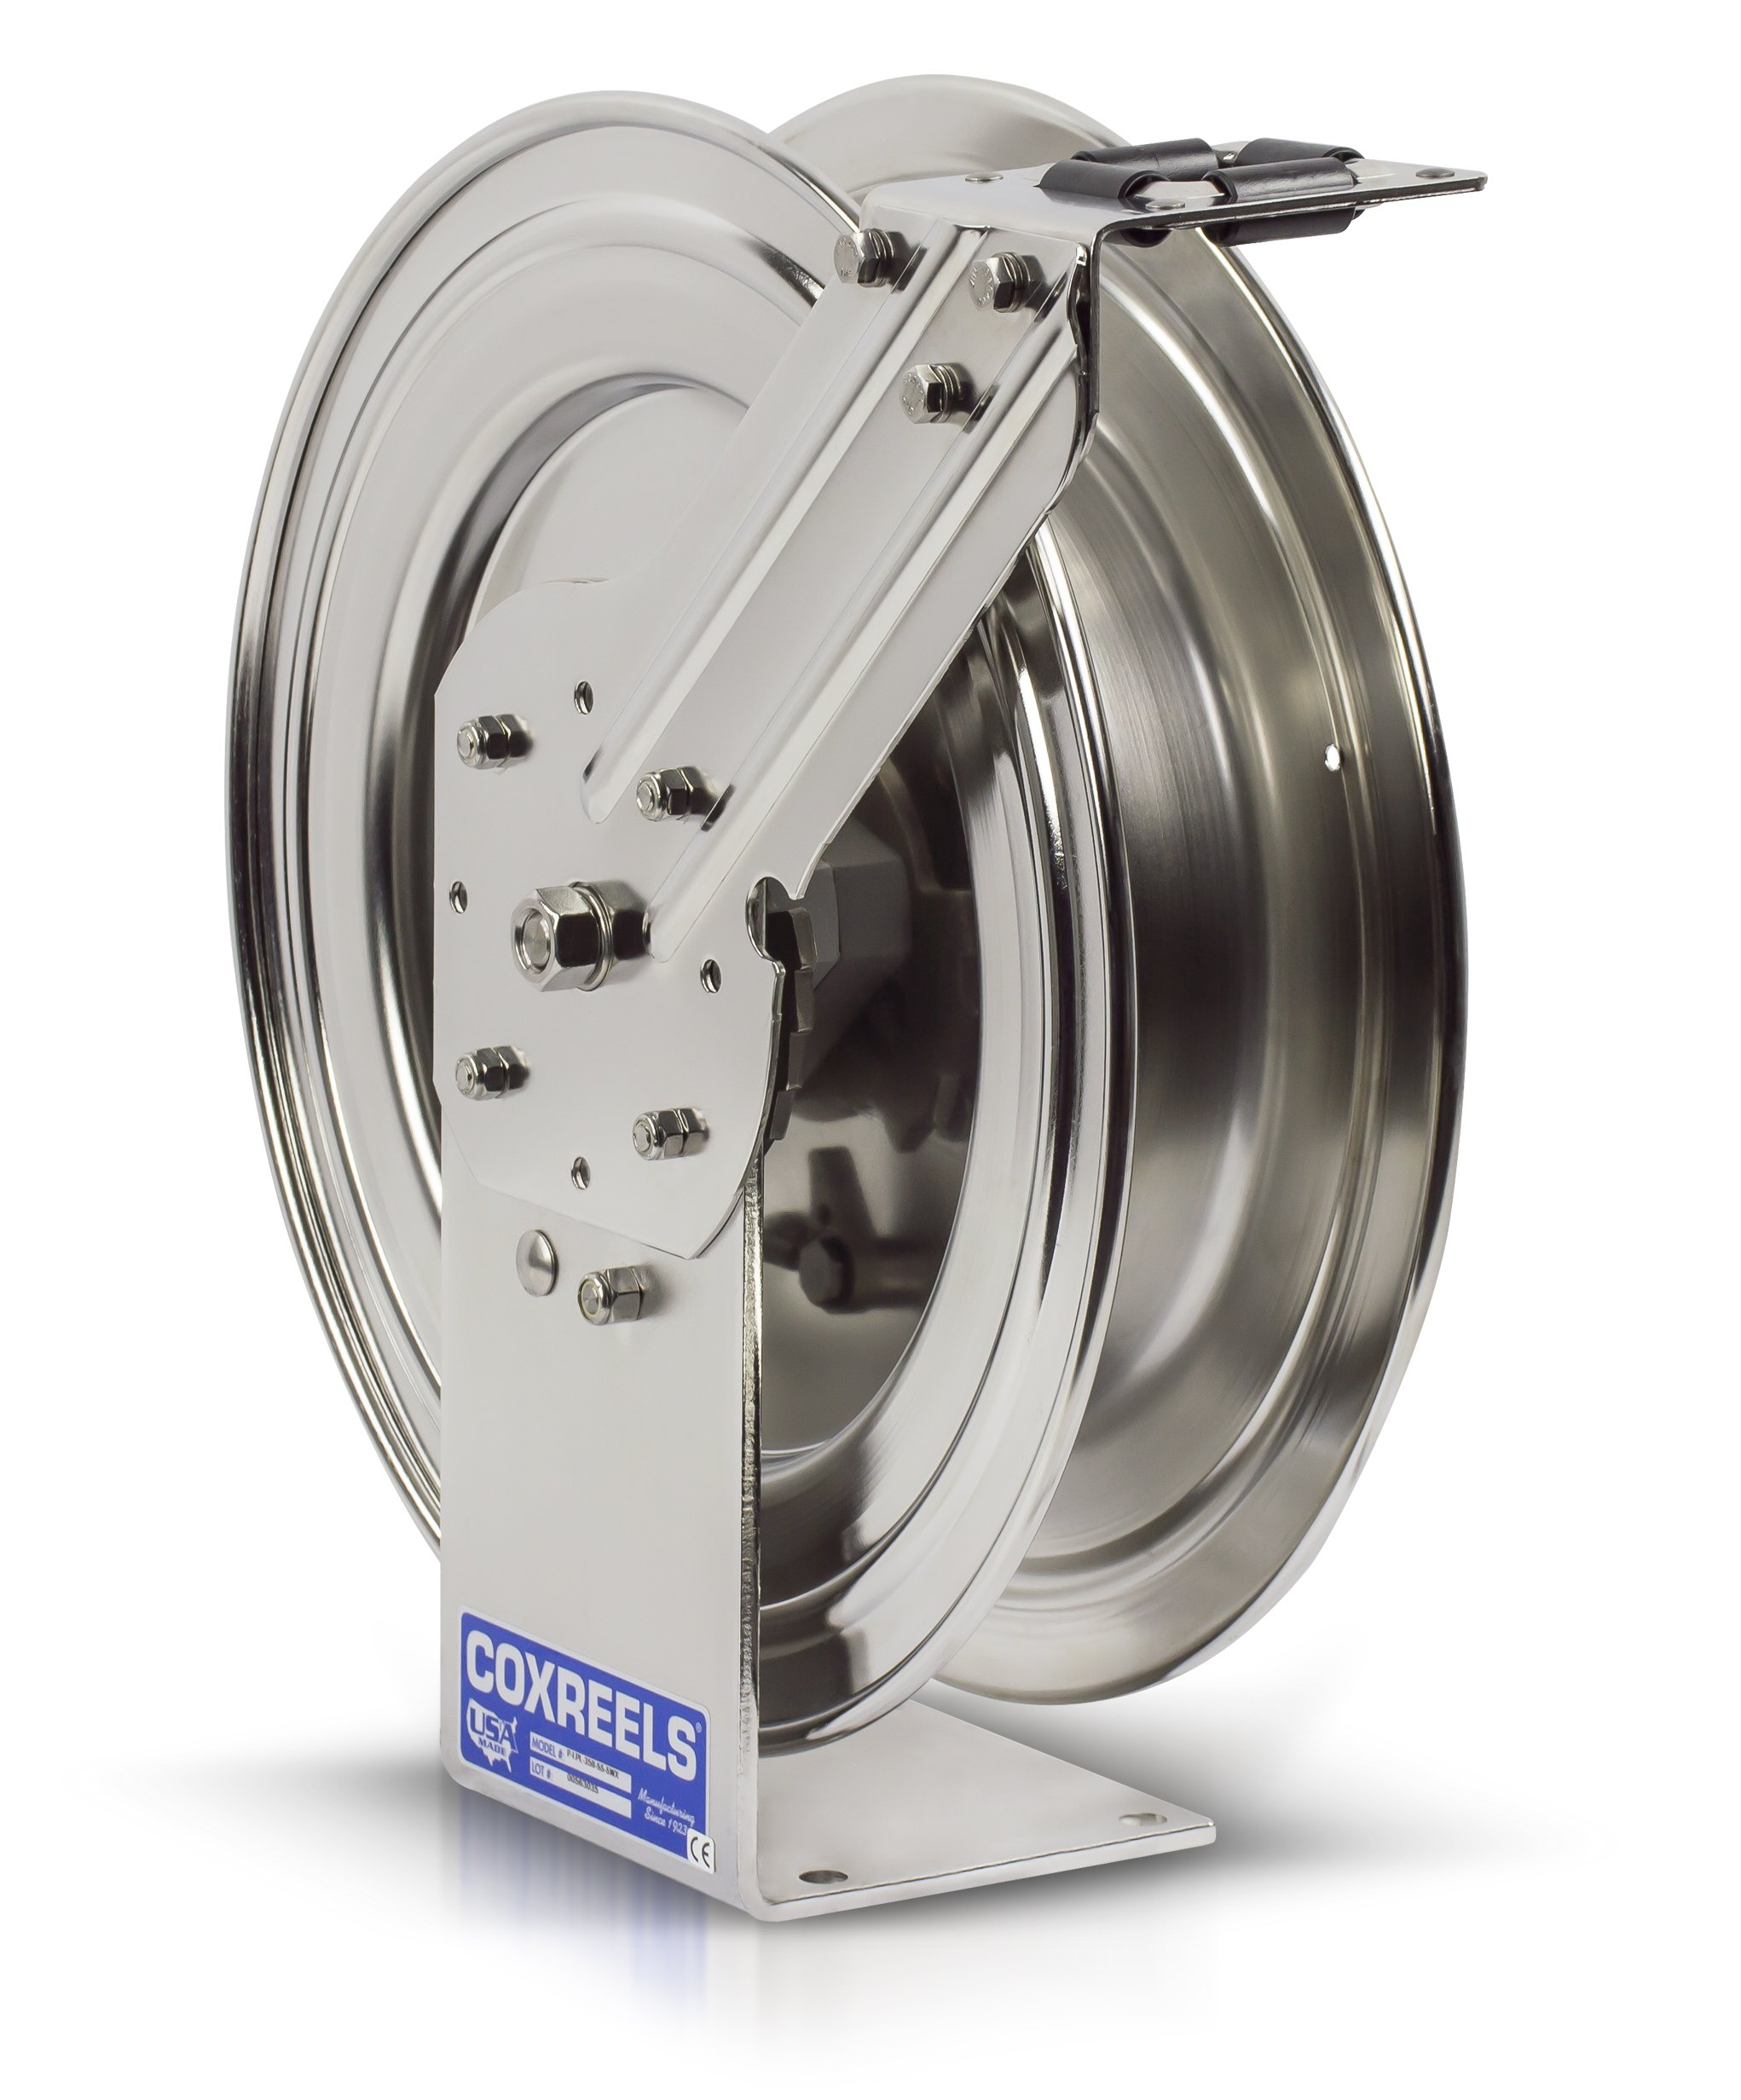 Coxreels P-LPL-425-SS Stainless Steel Spring Rewind Hose Reel: 1/2'' I.D, 25' Hose Capacity, Less Hose, 300 PSI by Coxreels